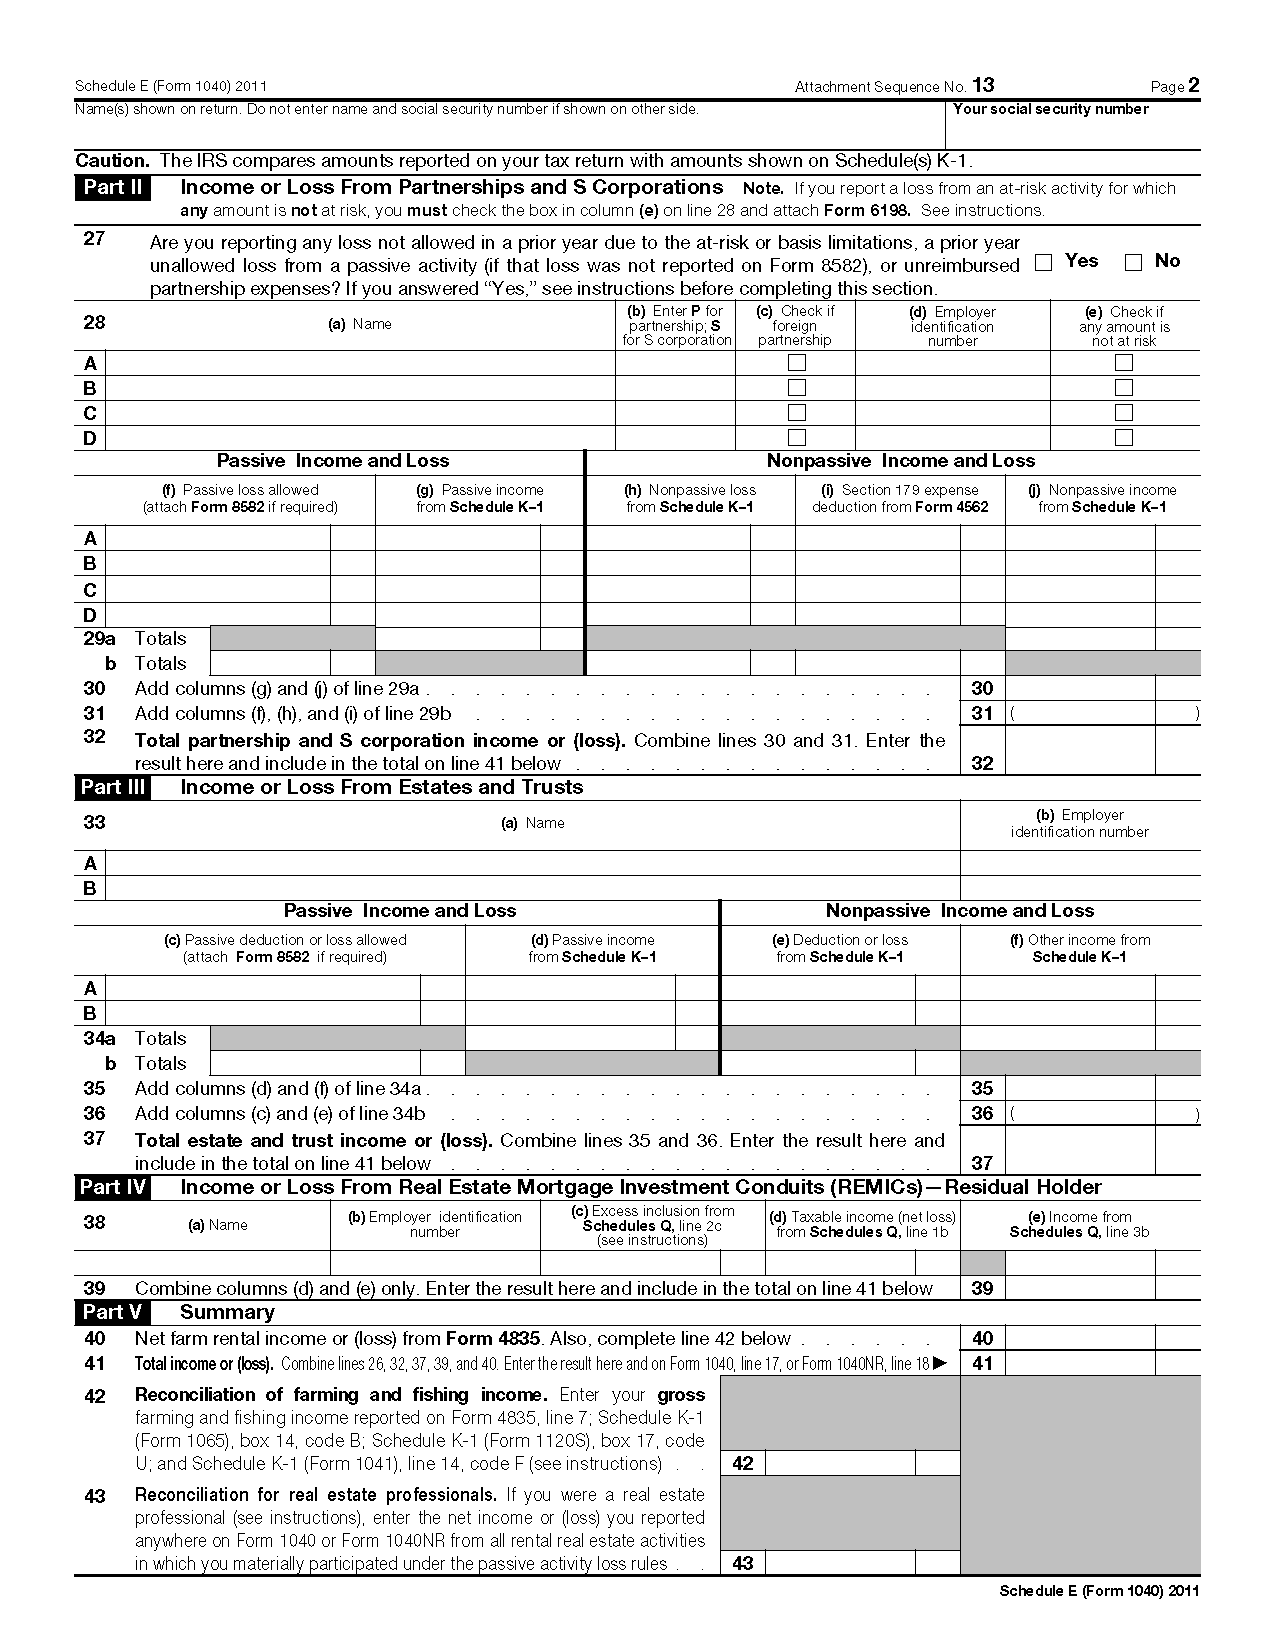 Form 1040 (Schedule E) Supplemental Income and Loss